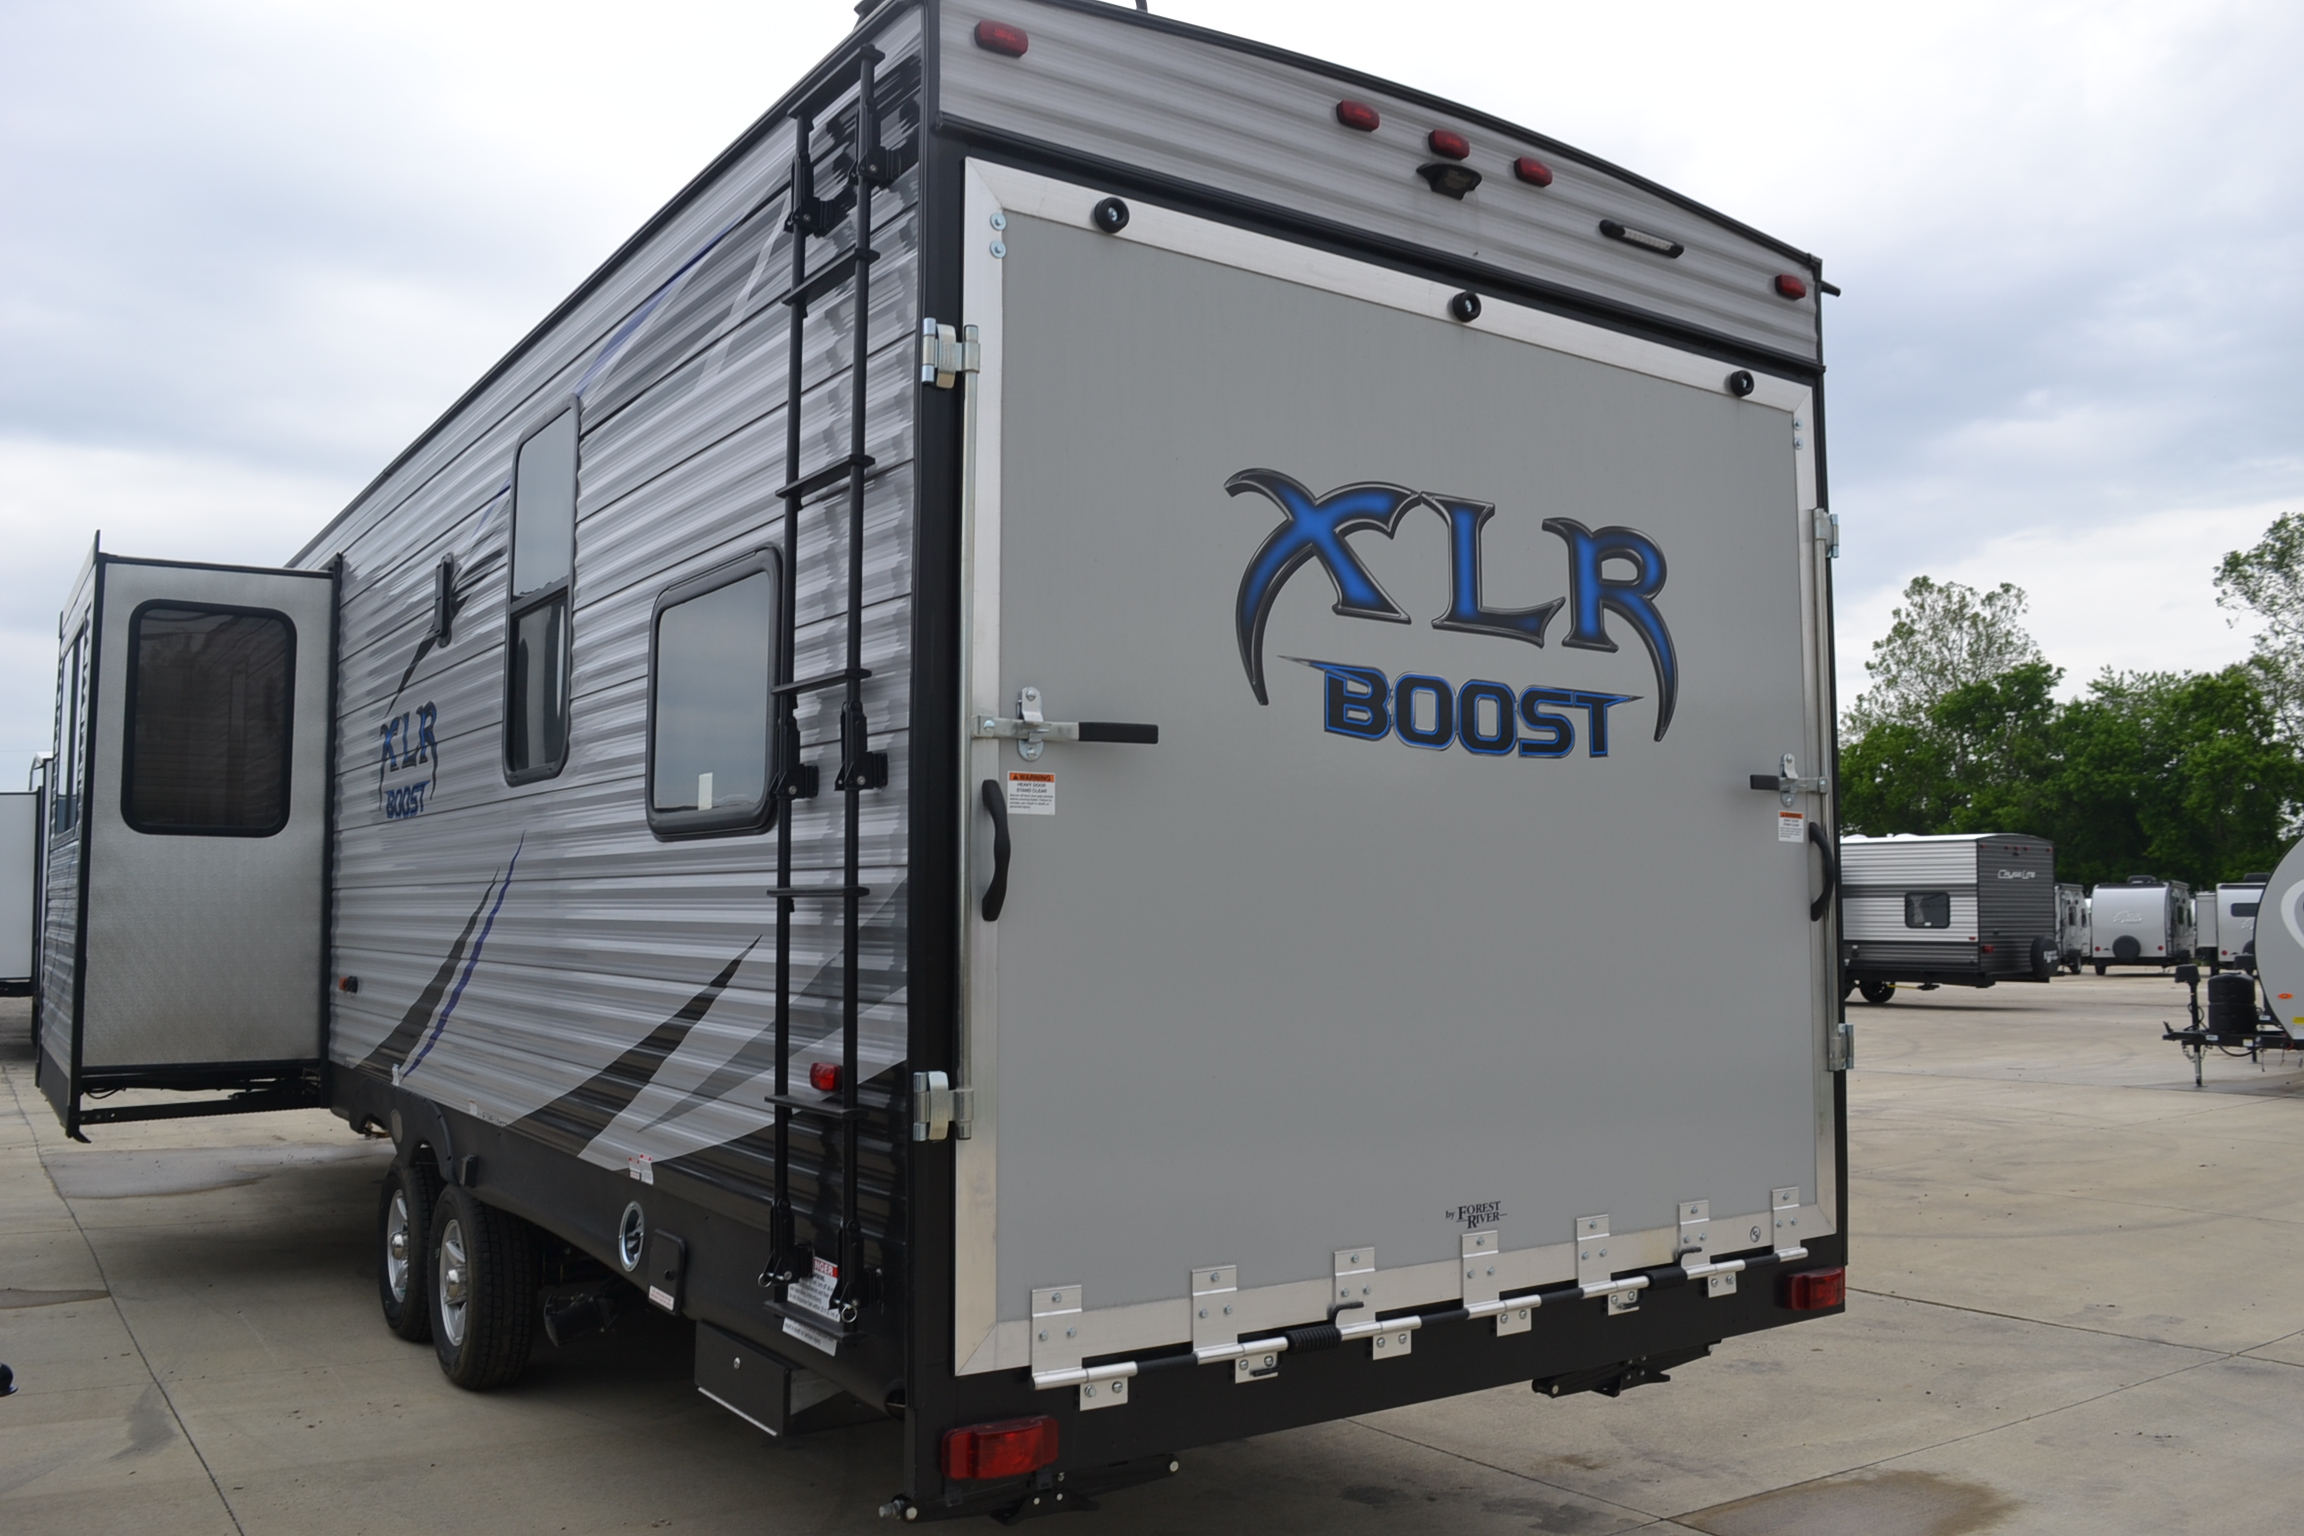 2019 XLR Boost 29QBS Toy Hauler (Travel Trailer) by Forest ...